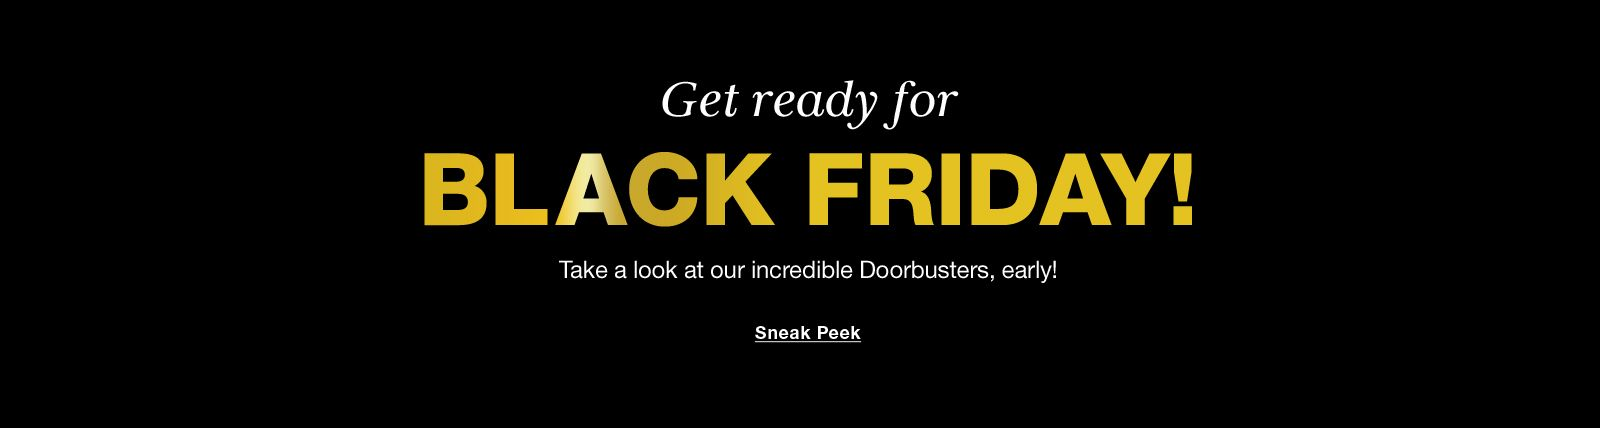 Get ready for, Black Friday! Take a look at our incredible Doorbusters, early! Sneak Peek